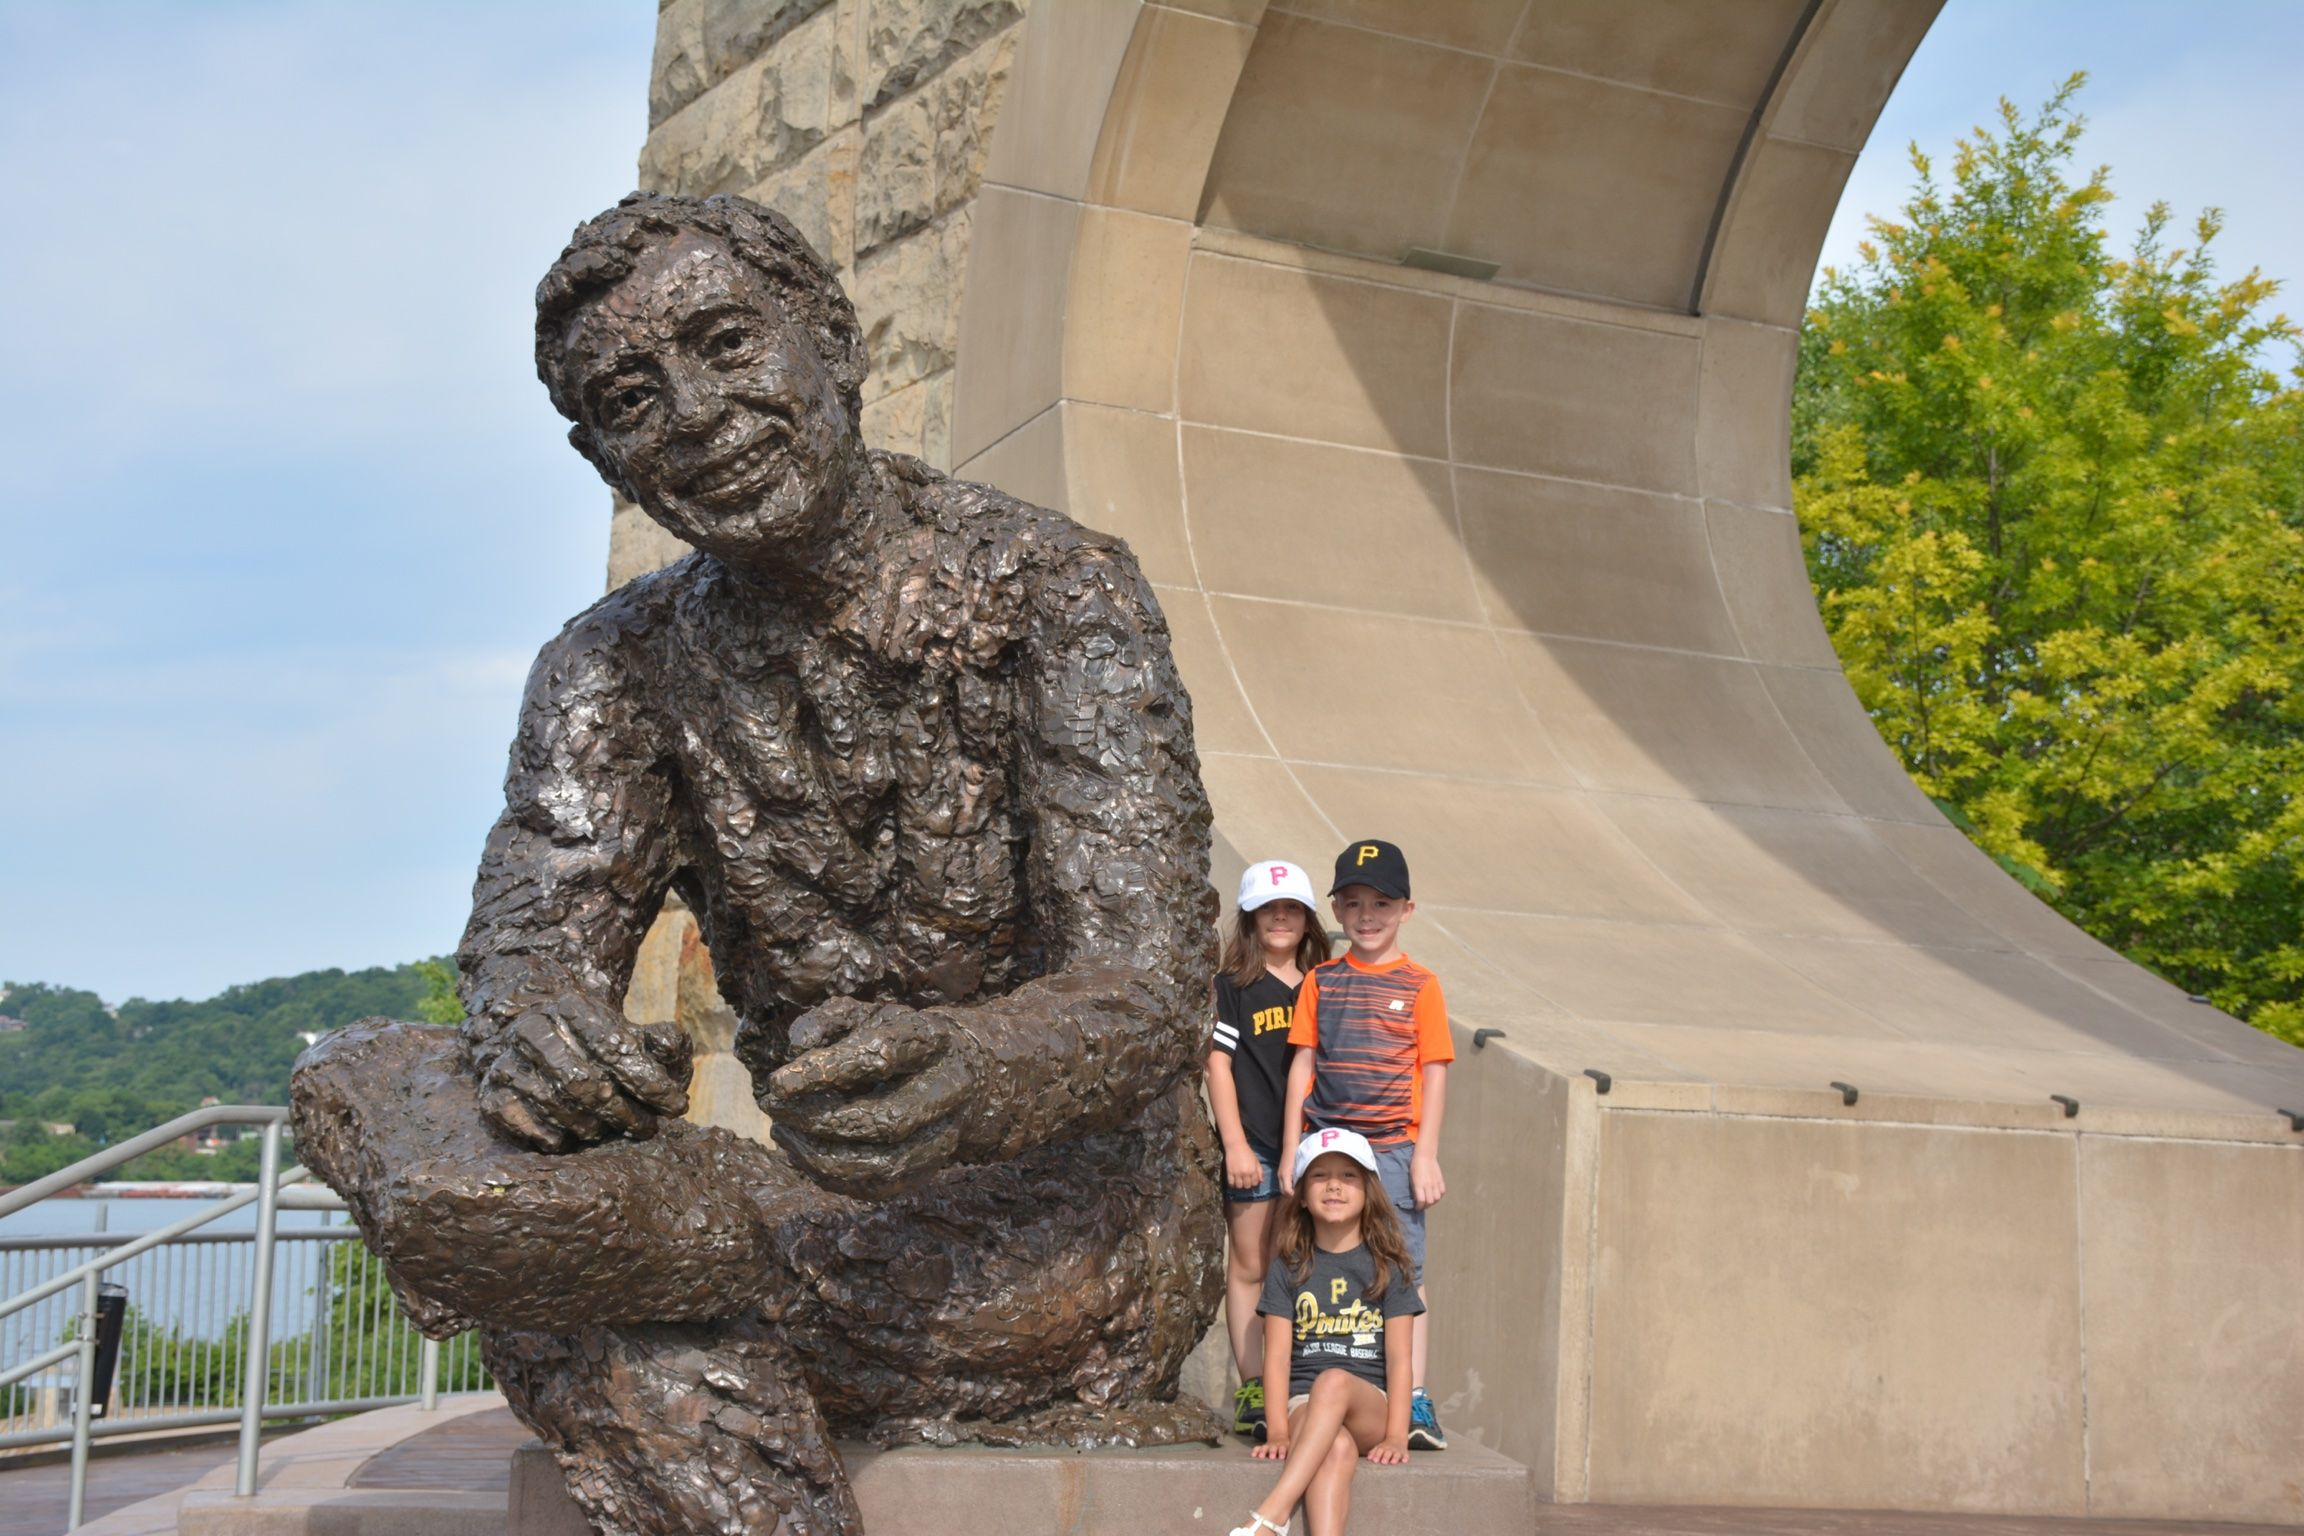 Fred Rogers Statue In Pittsburgh Vacation Wishes Fred Rogers Statue